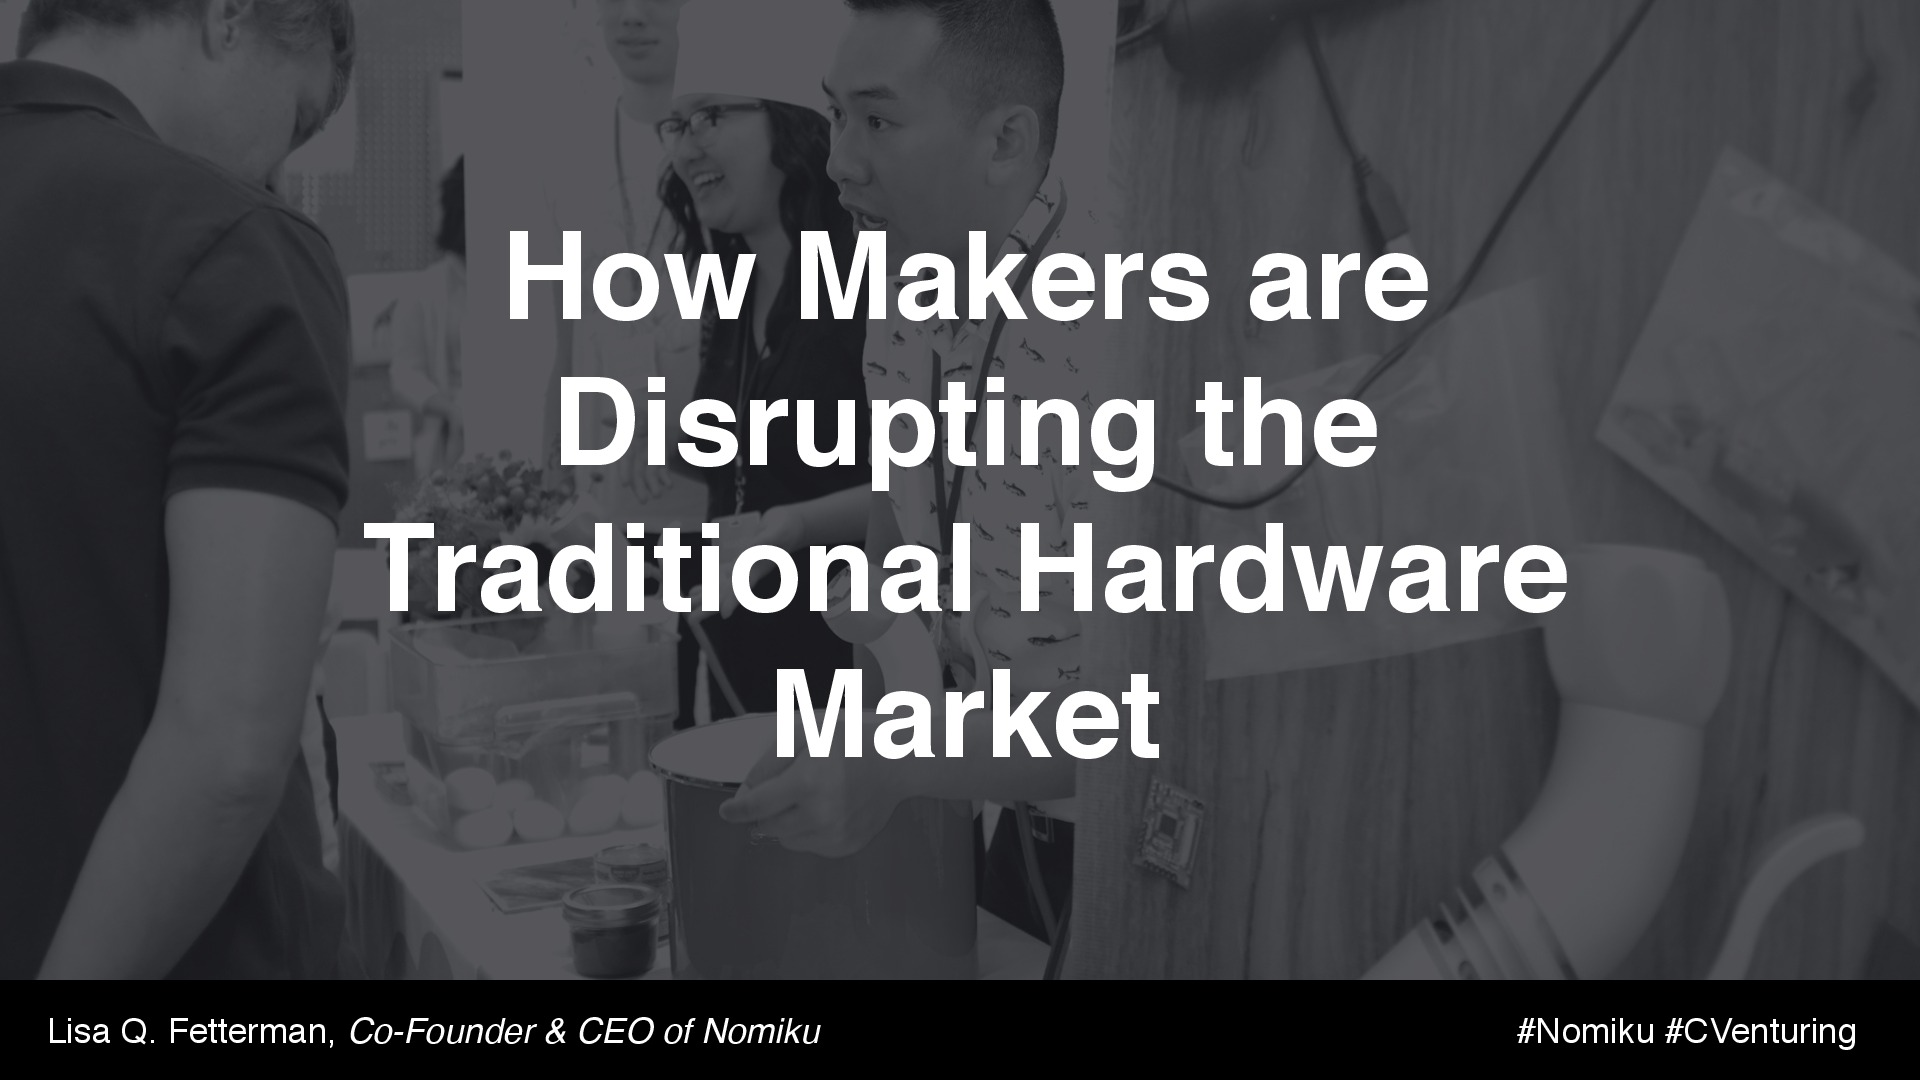 How Makers are Disrupting the Traditional Hardware Market